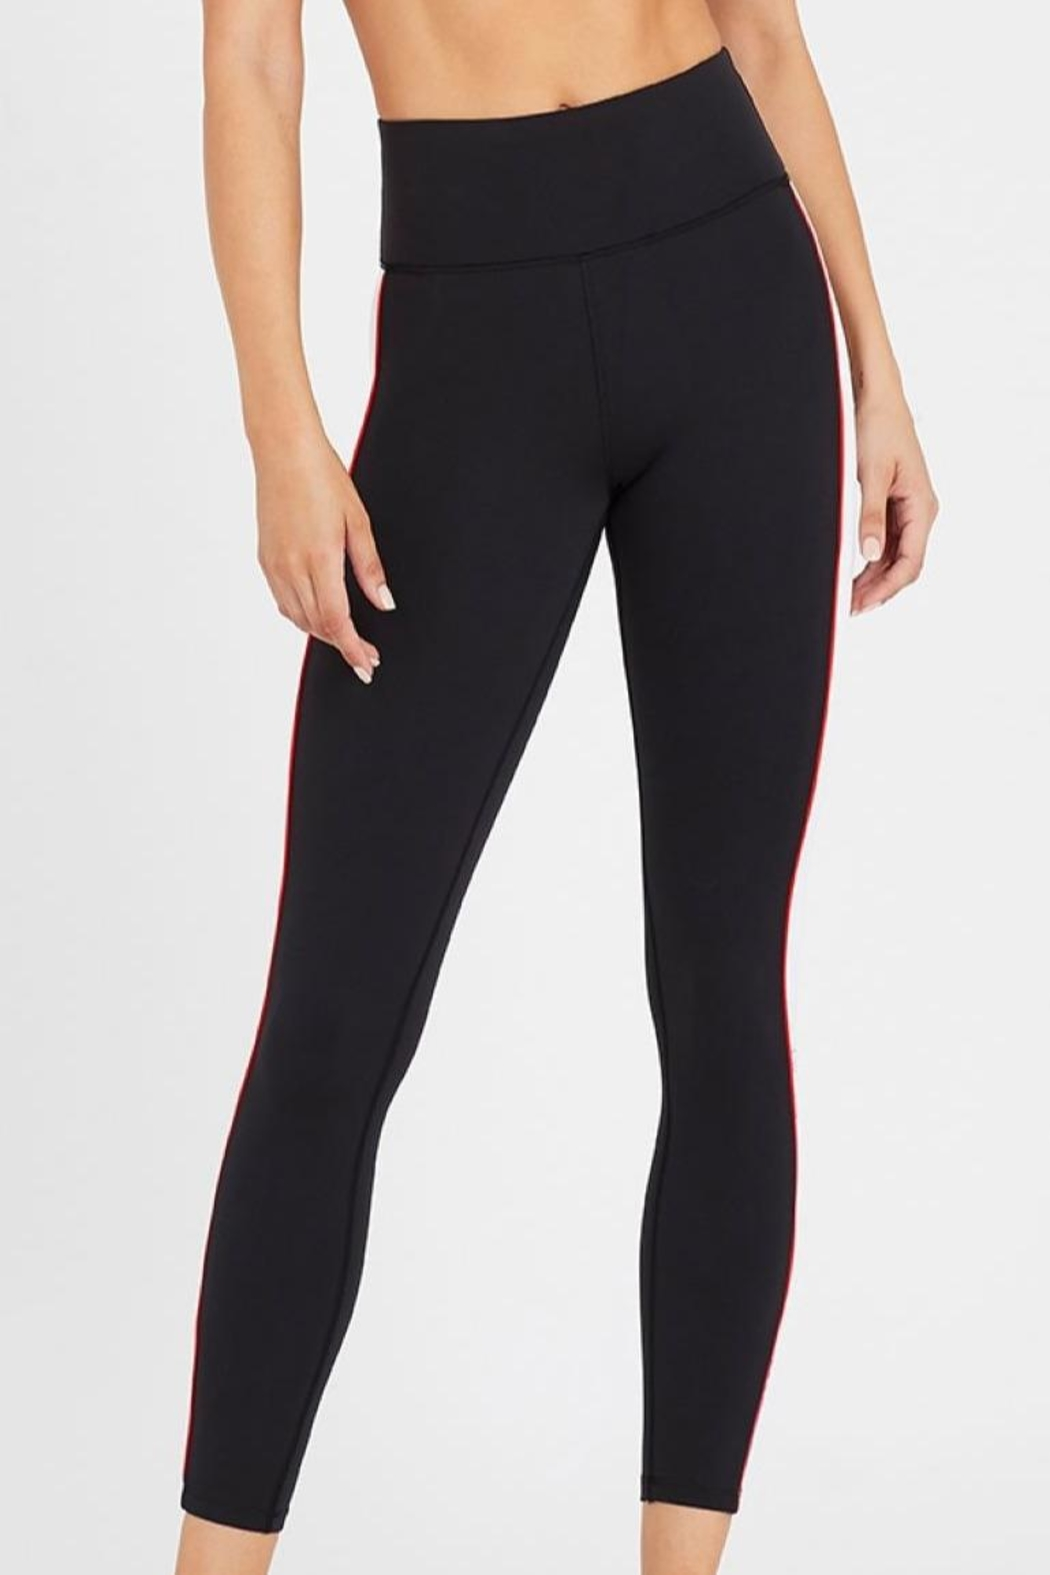 P.E NATION Lineal Success Legging - Side Cropped Image